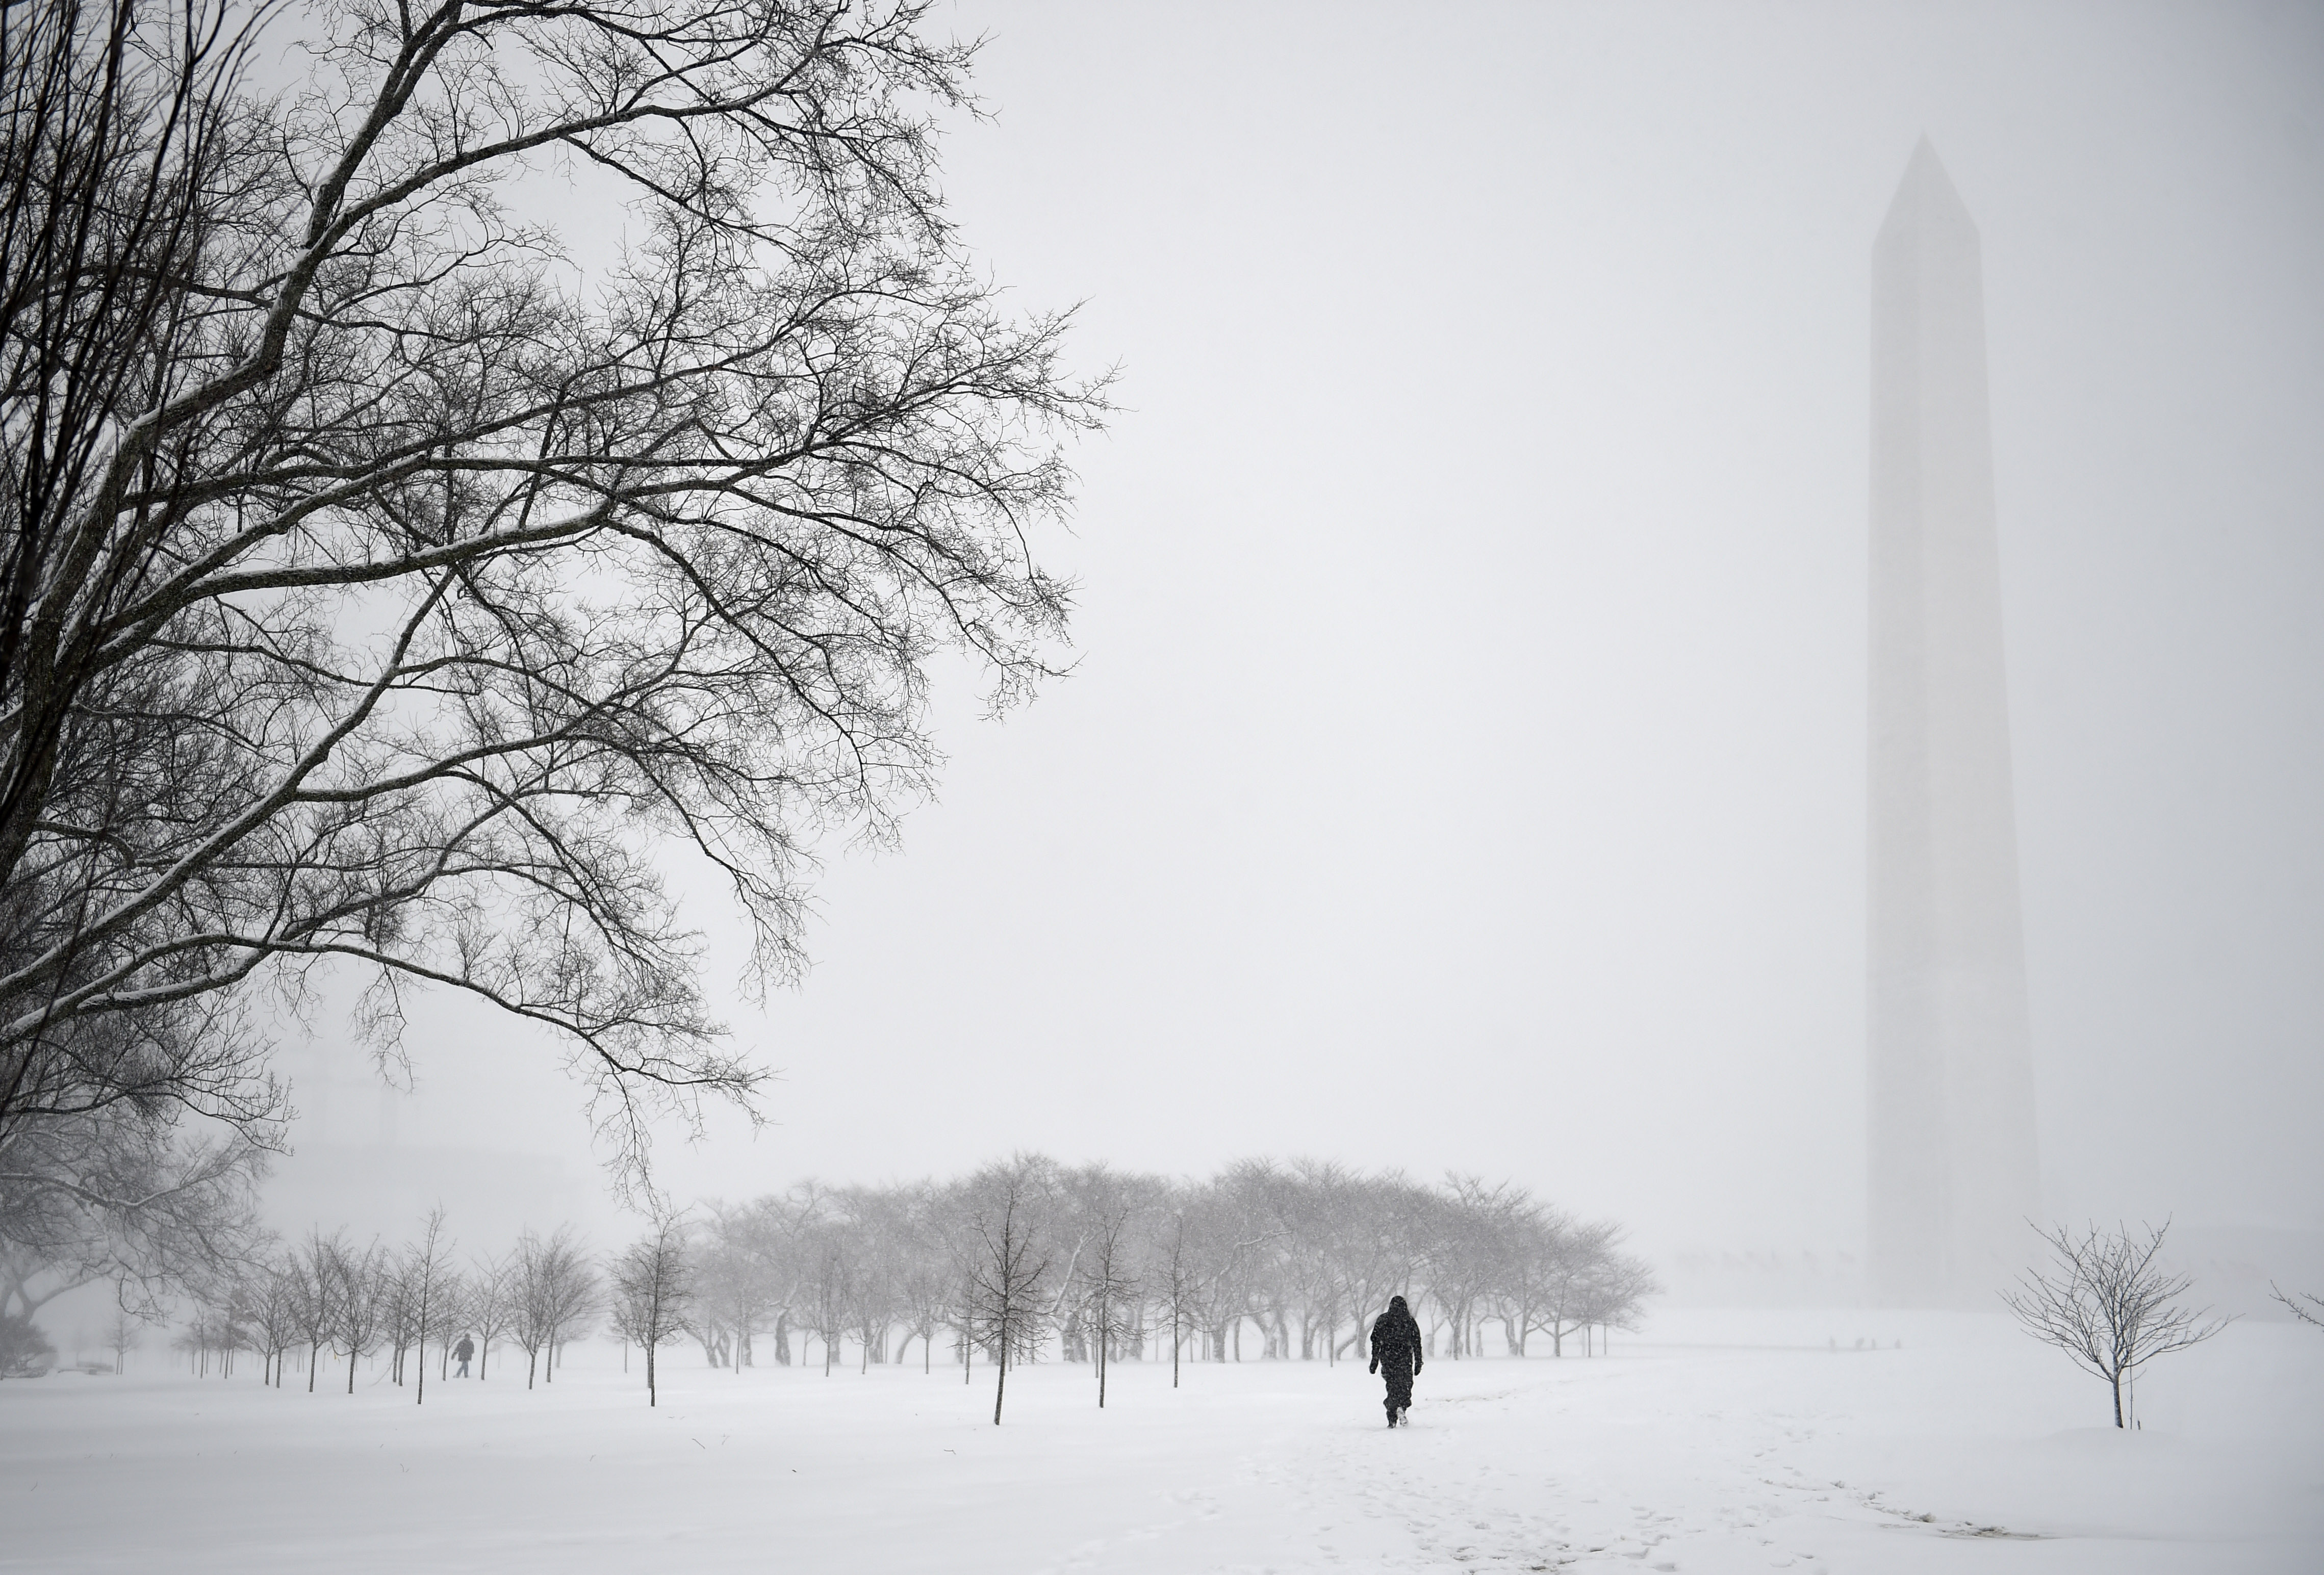 Not many visitors brave the snow for a walk at the National Mall while another snow storm hits Washington, D.C., March 5, 2015, with predicted record low temperatures and severe snow accumulations.